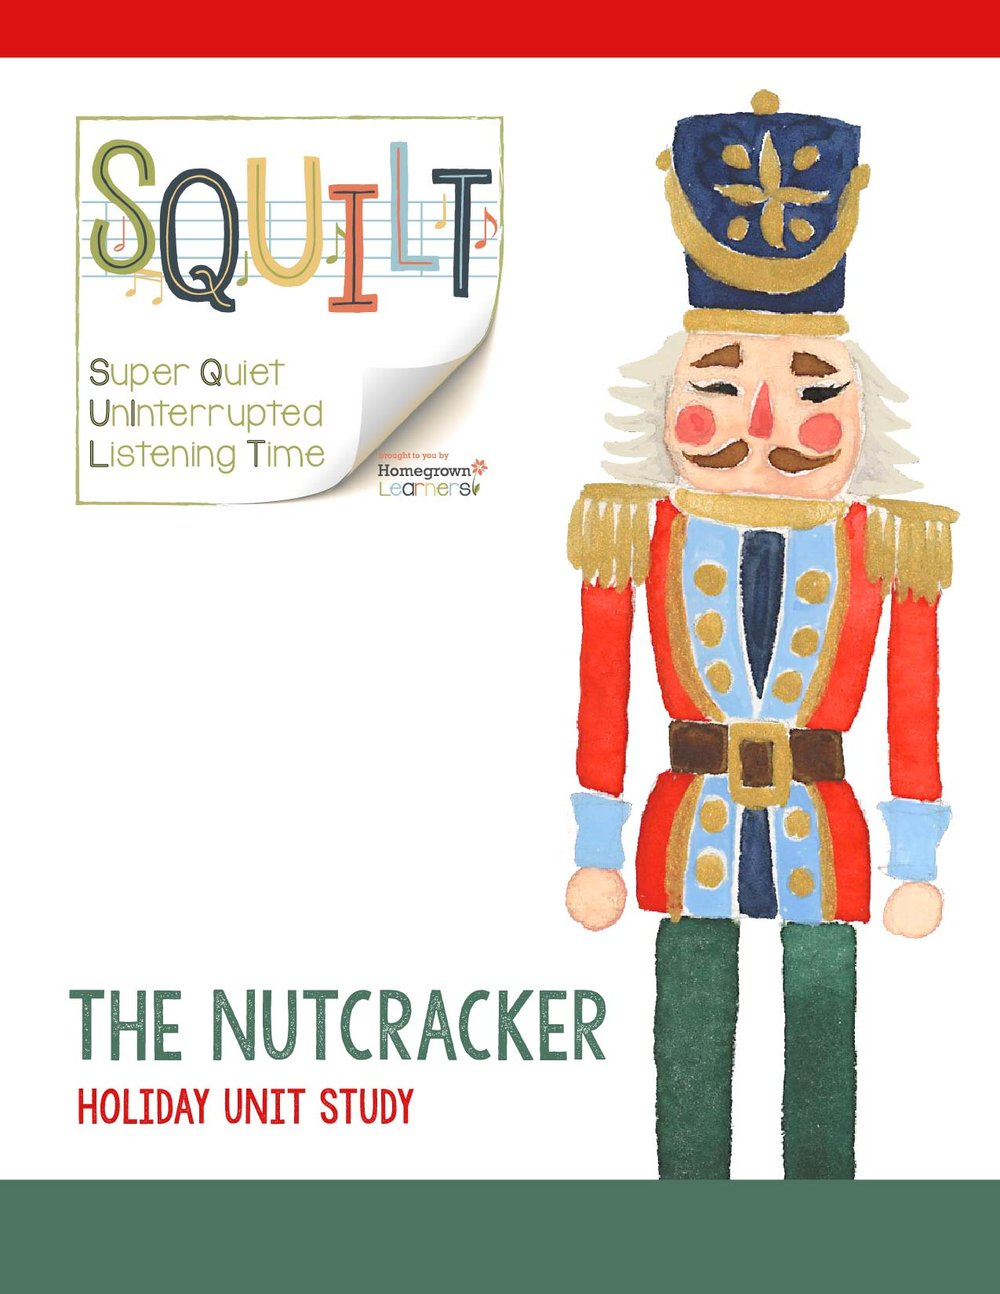 SQUILT_Nutcracker_cover-01.jpg